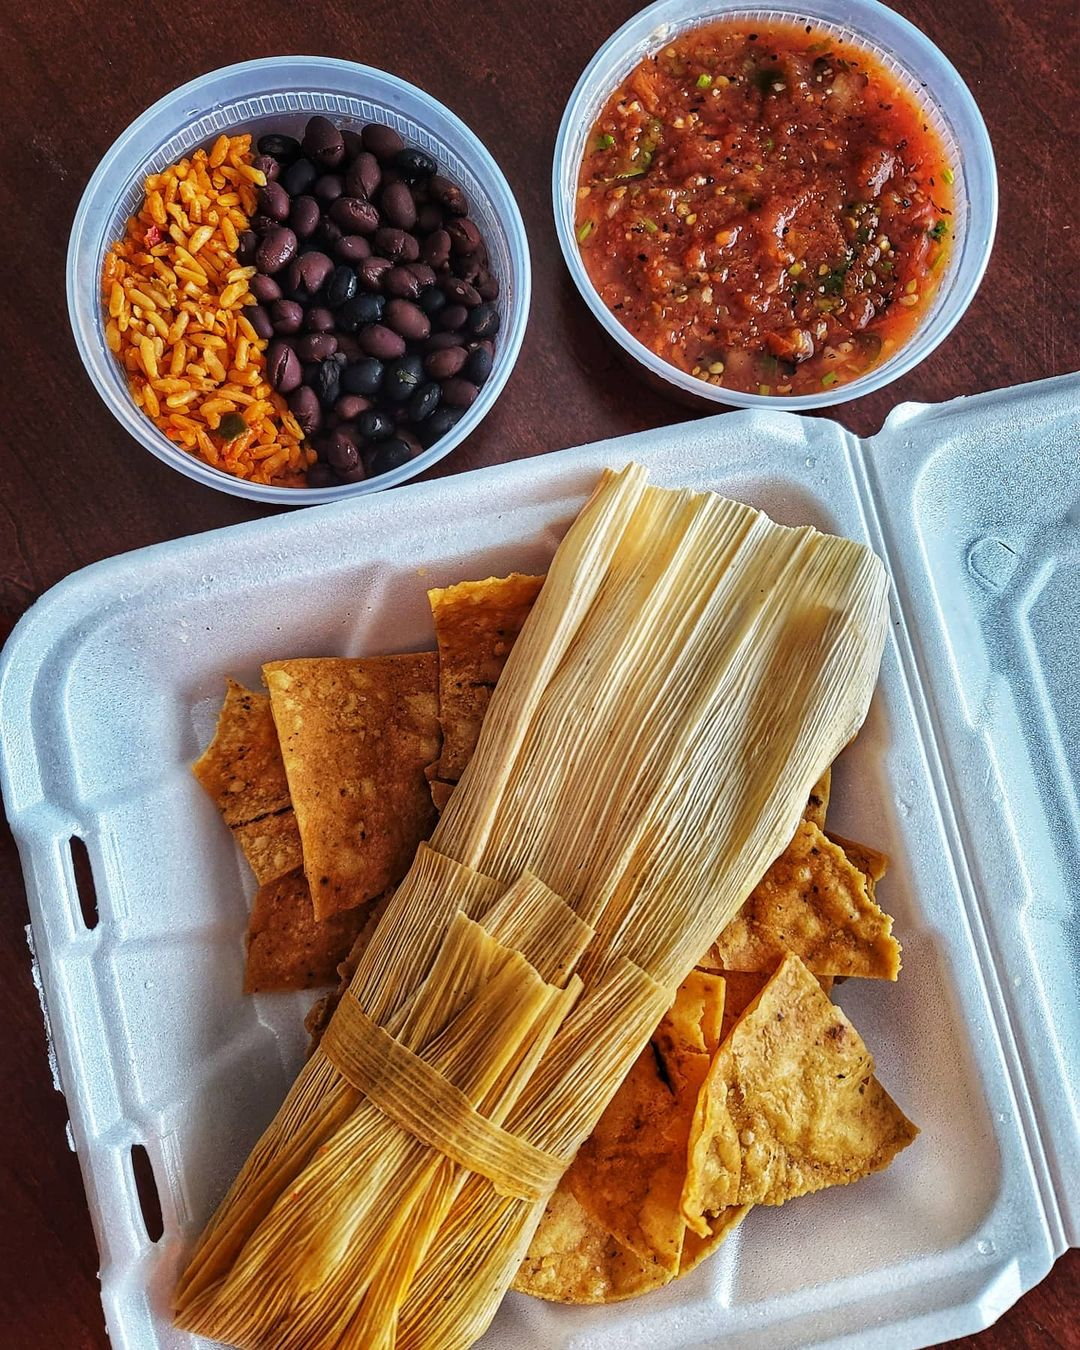 Hot and spicy pork tamale, rice, black beans, and salsa from The Tamale Place